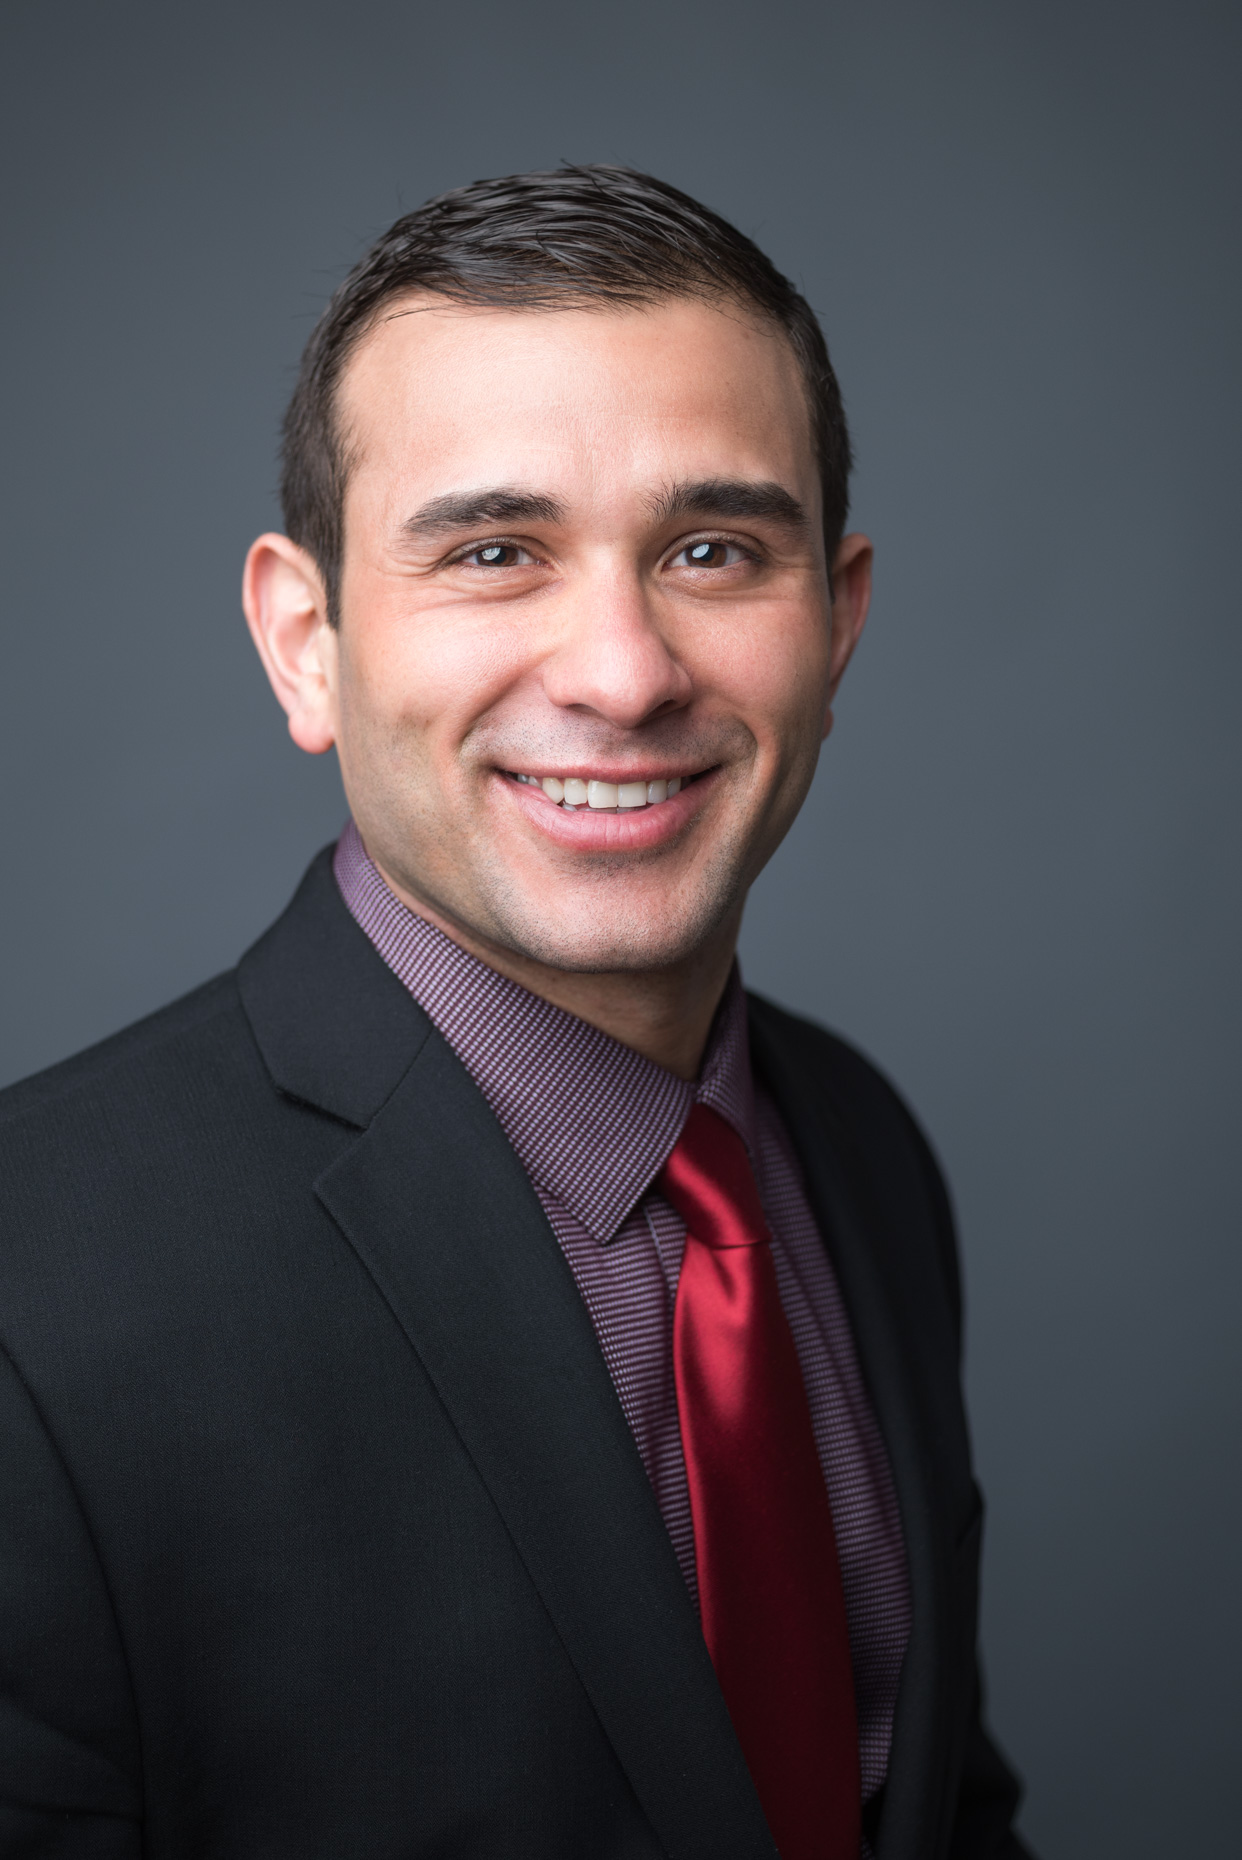 Studio Headshot of Alex Maghoub, Licensed Associate Real Estate Broker at COMPASS, New York City.